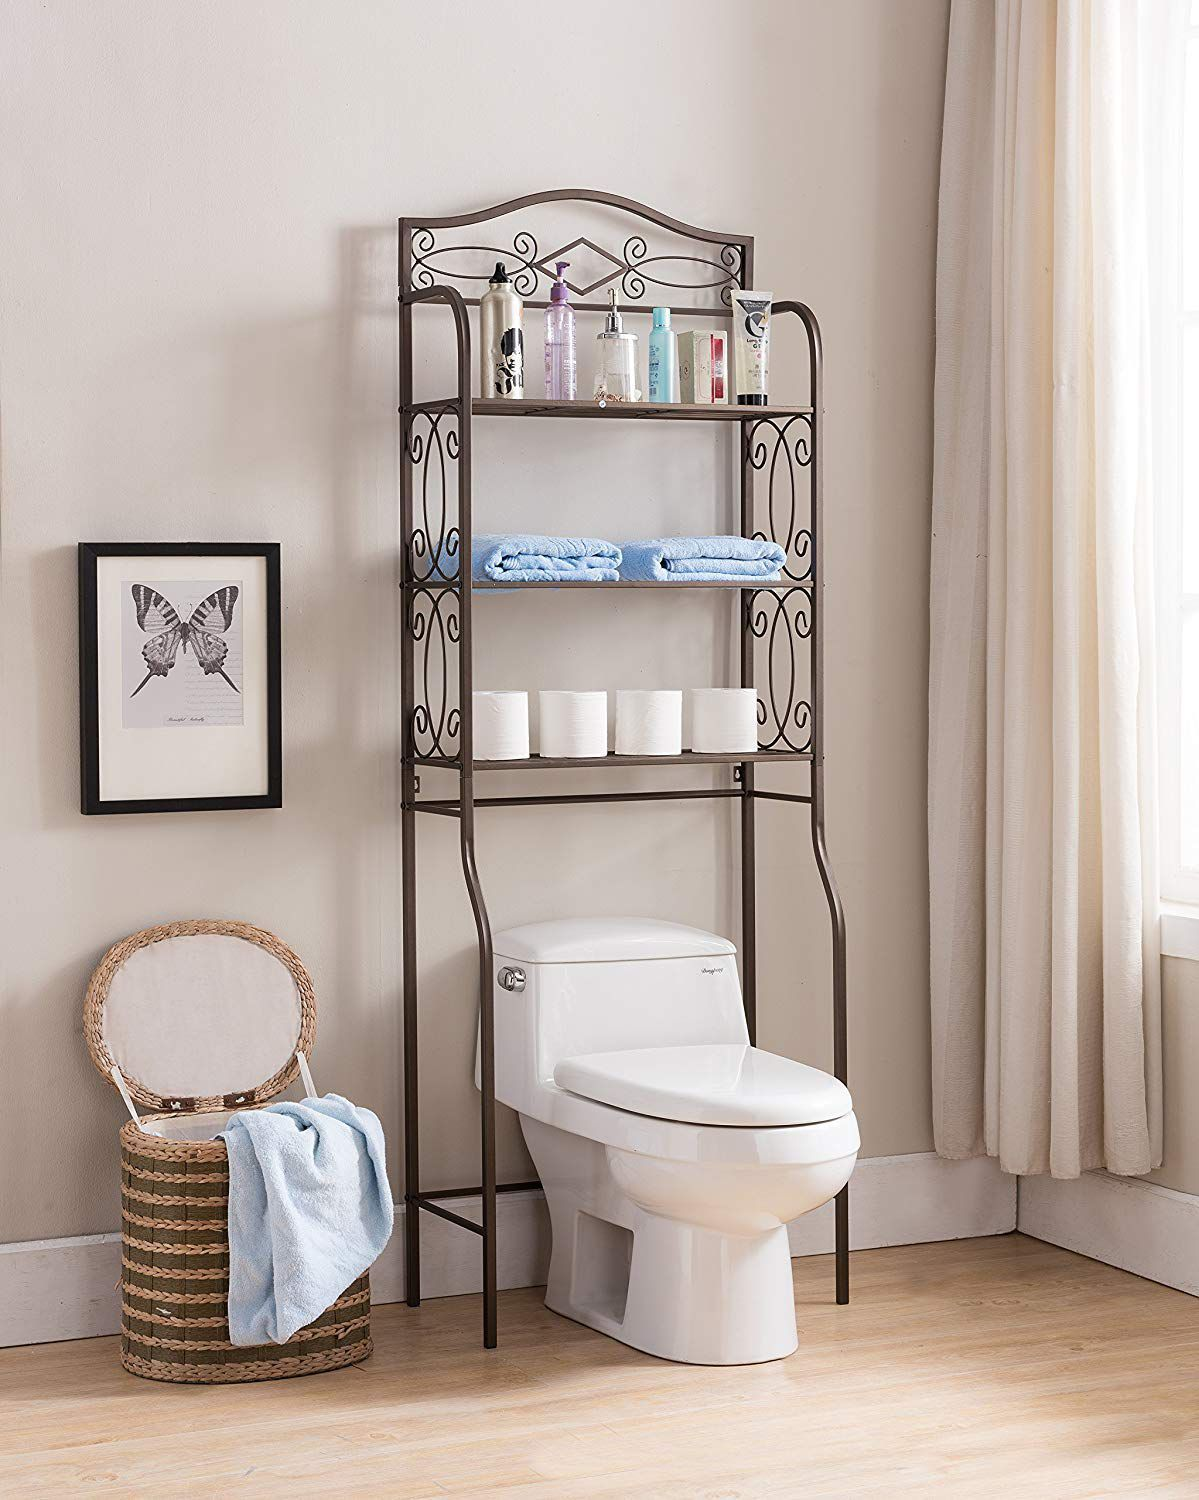 18 Small Bathroom Storage Ideas - Wall Storage Solutions and Shelves for Bathrooms